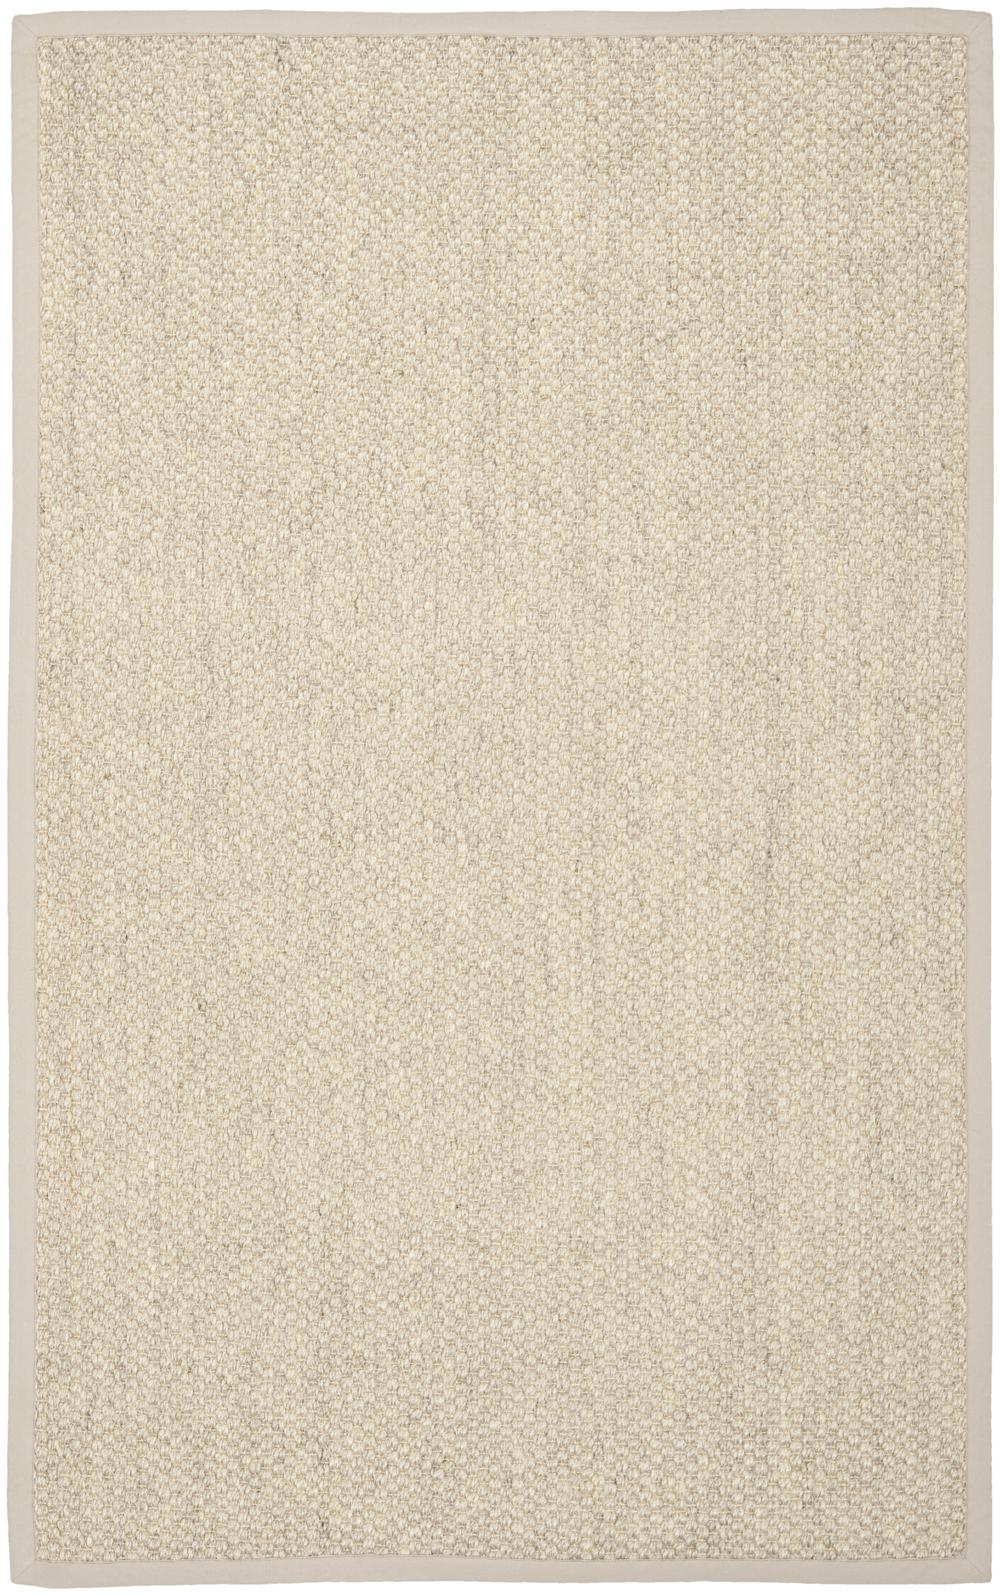 Safavieh Natural Fiber Nf525c Marble Area Rug Free Shipping